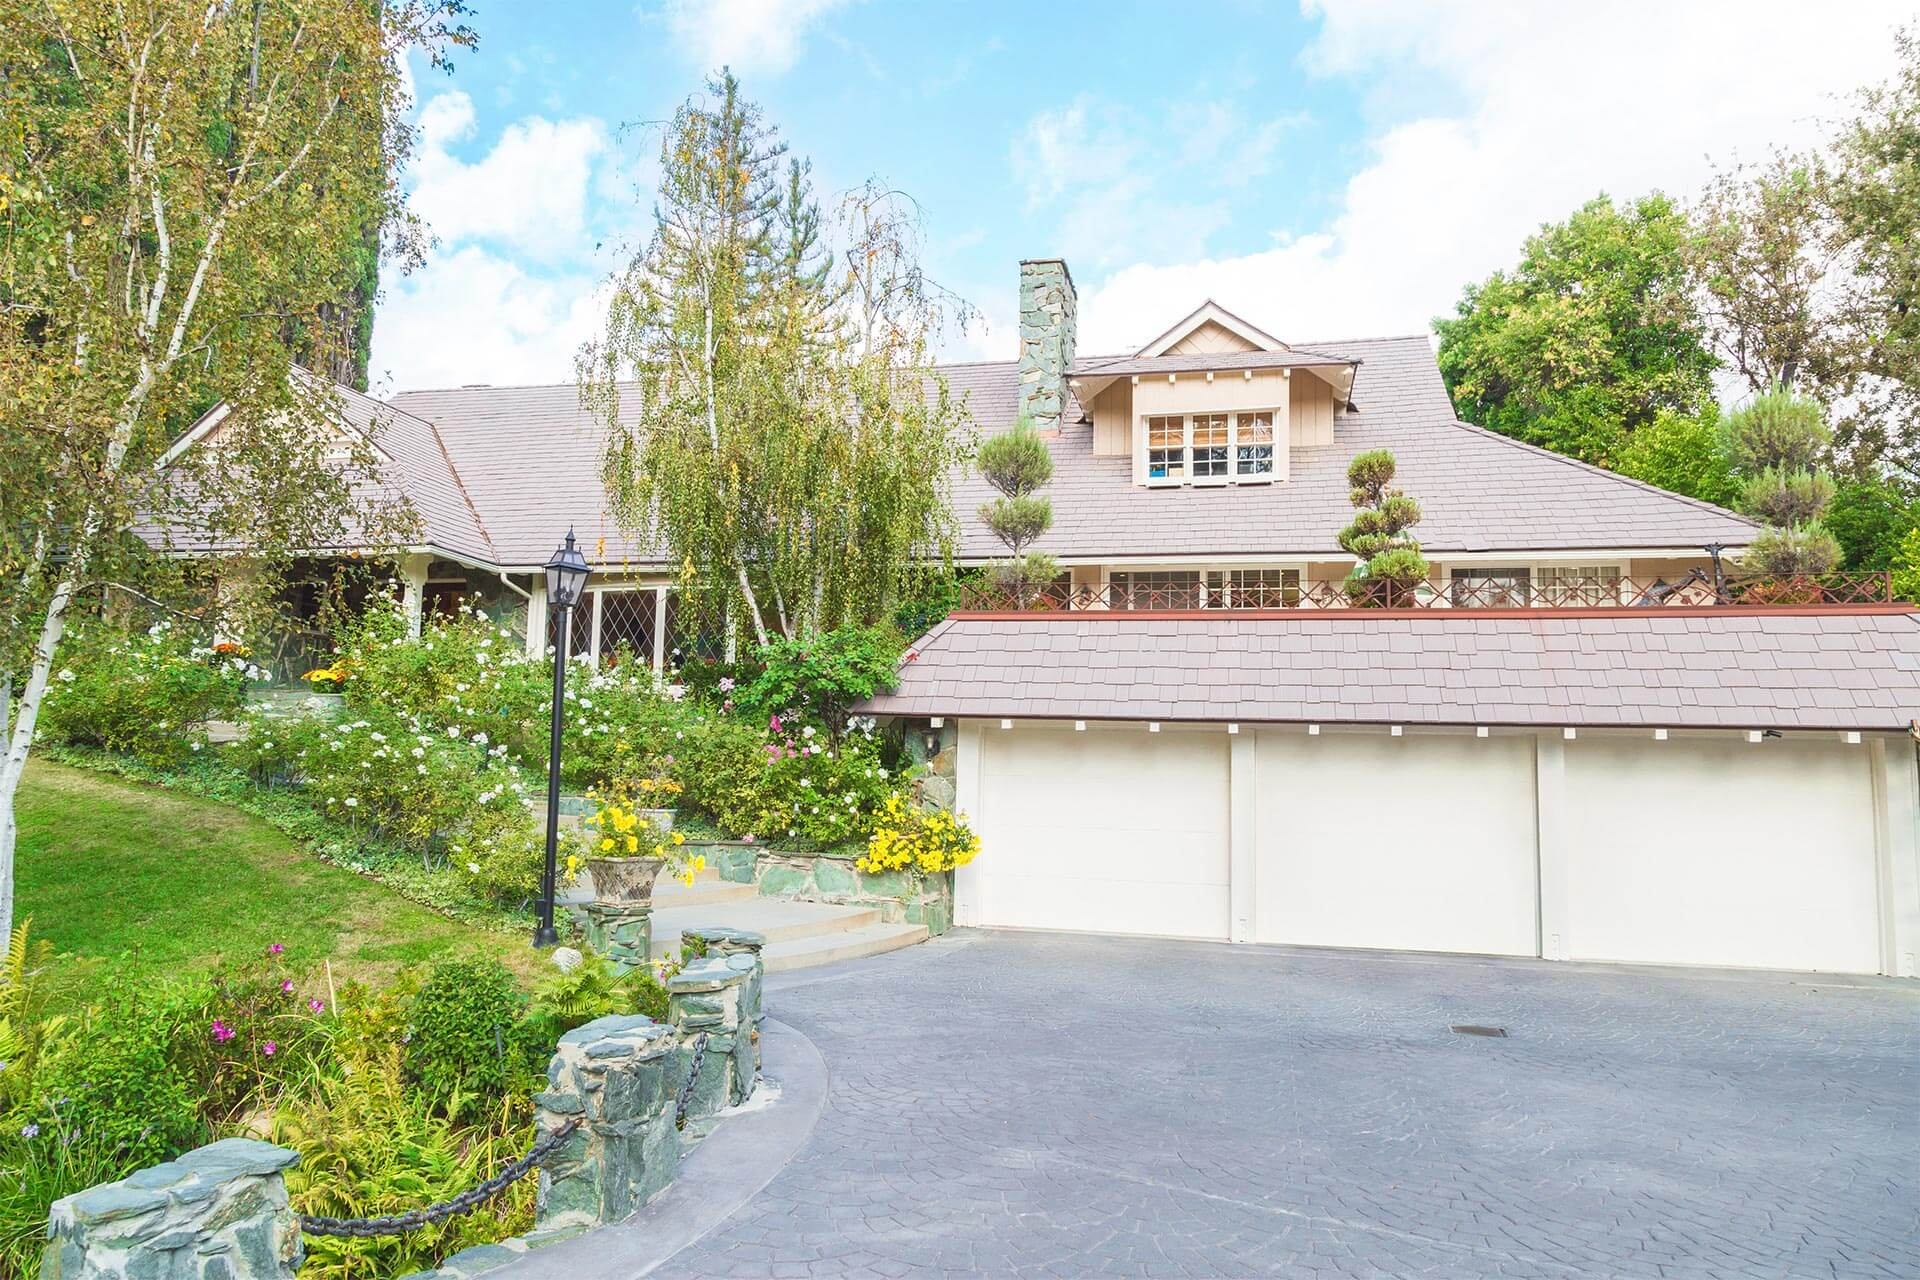 Real Estate Photography, front yard and street view in Beverly Hills California by photographer Travis Chenoweth